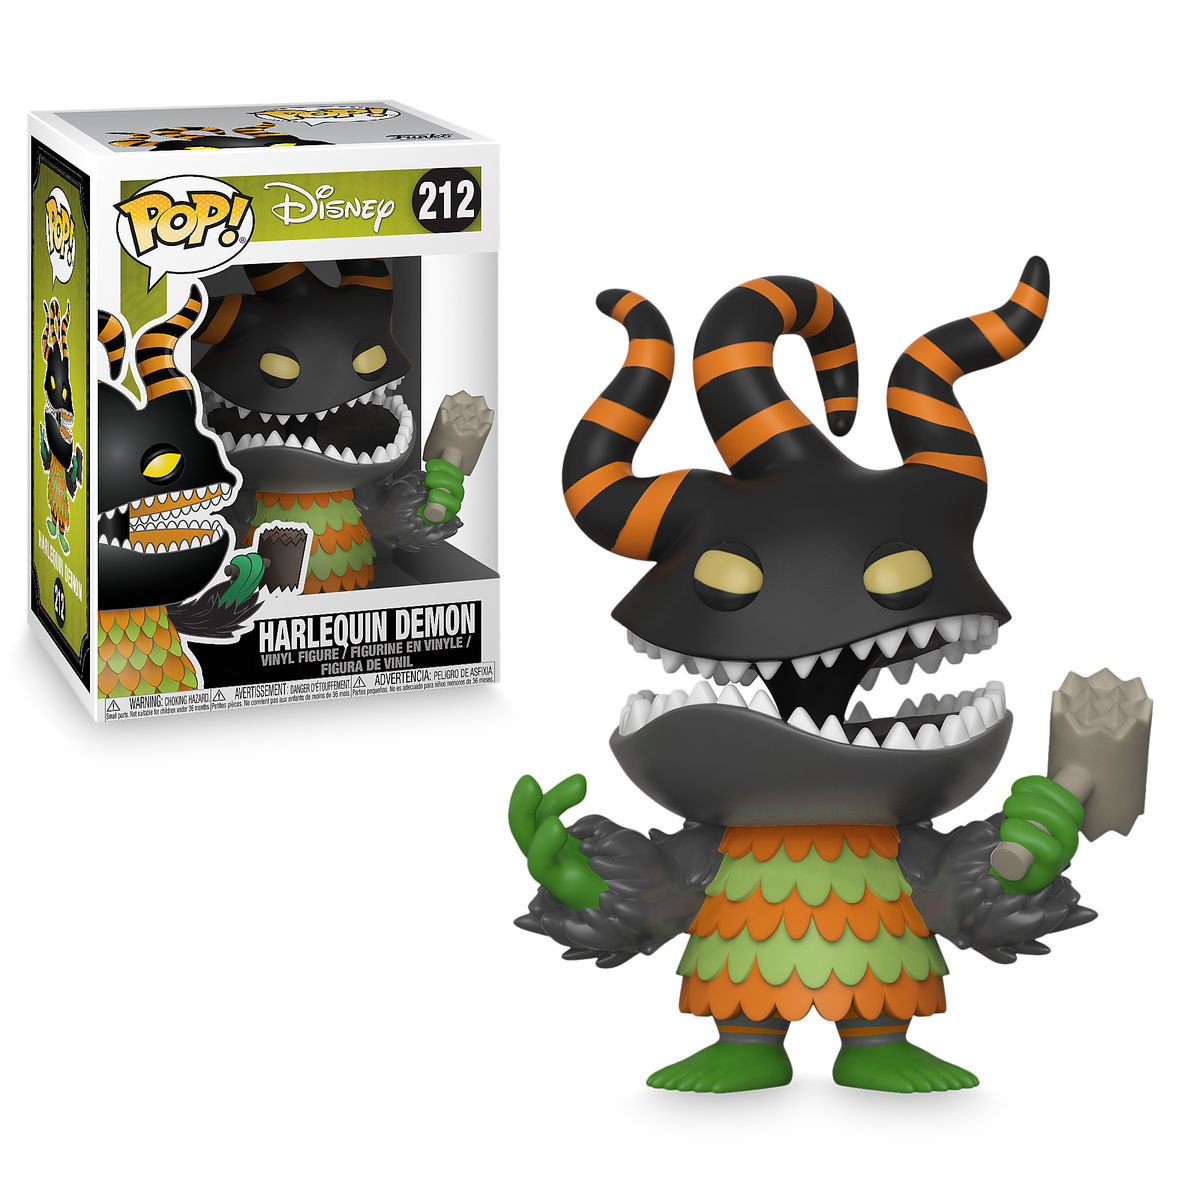 Harlequin Demon Pop! Vinyl Figure by Funko - The Nightmare Before ...